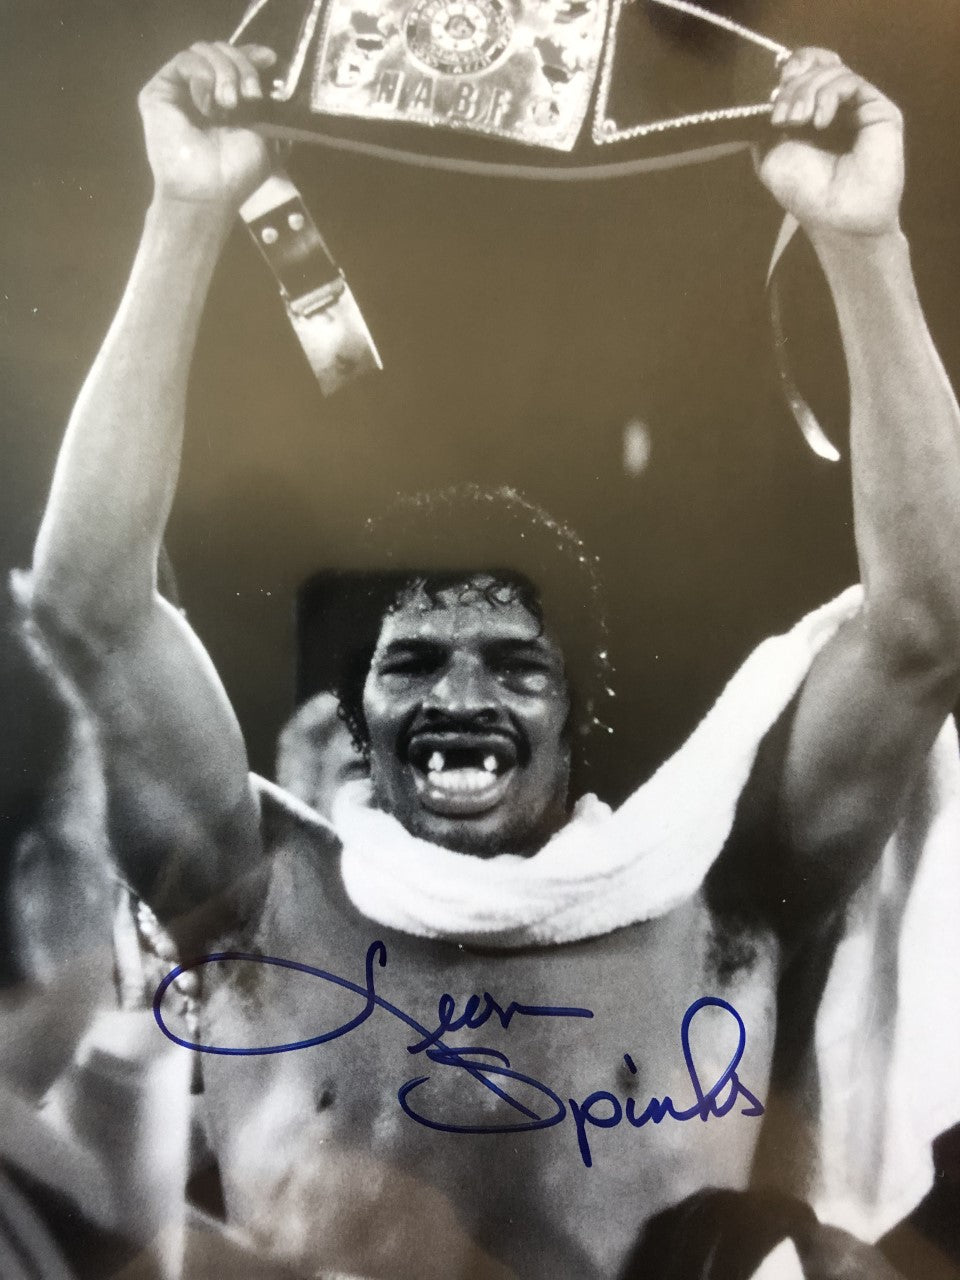 Leon Spinks Signed Authentic Autographed 8x10 Photo Hand Signed COA